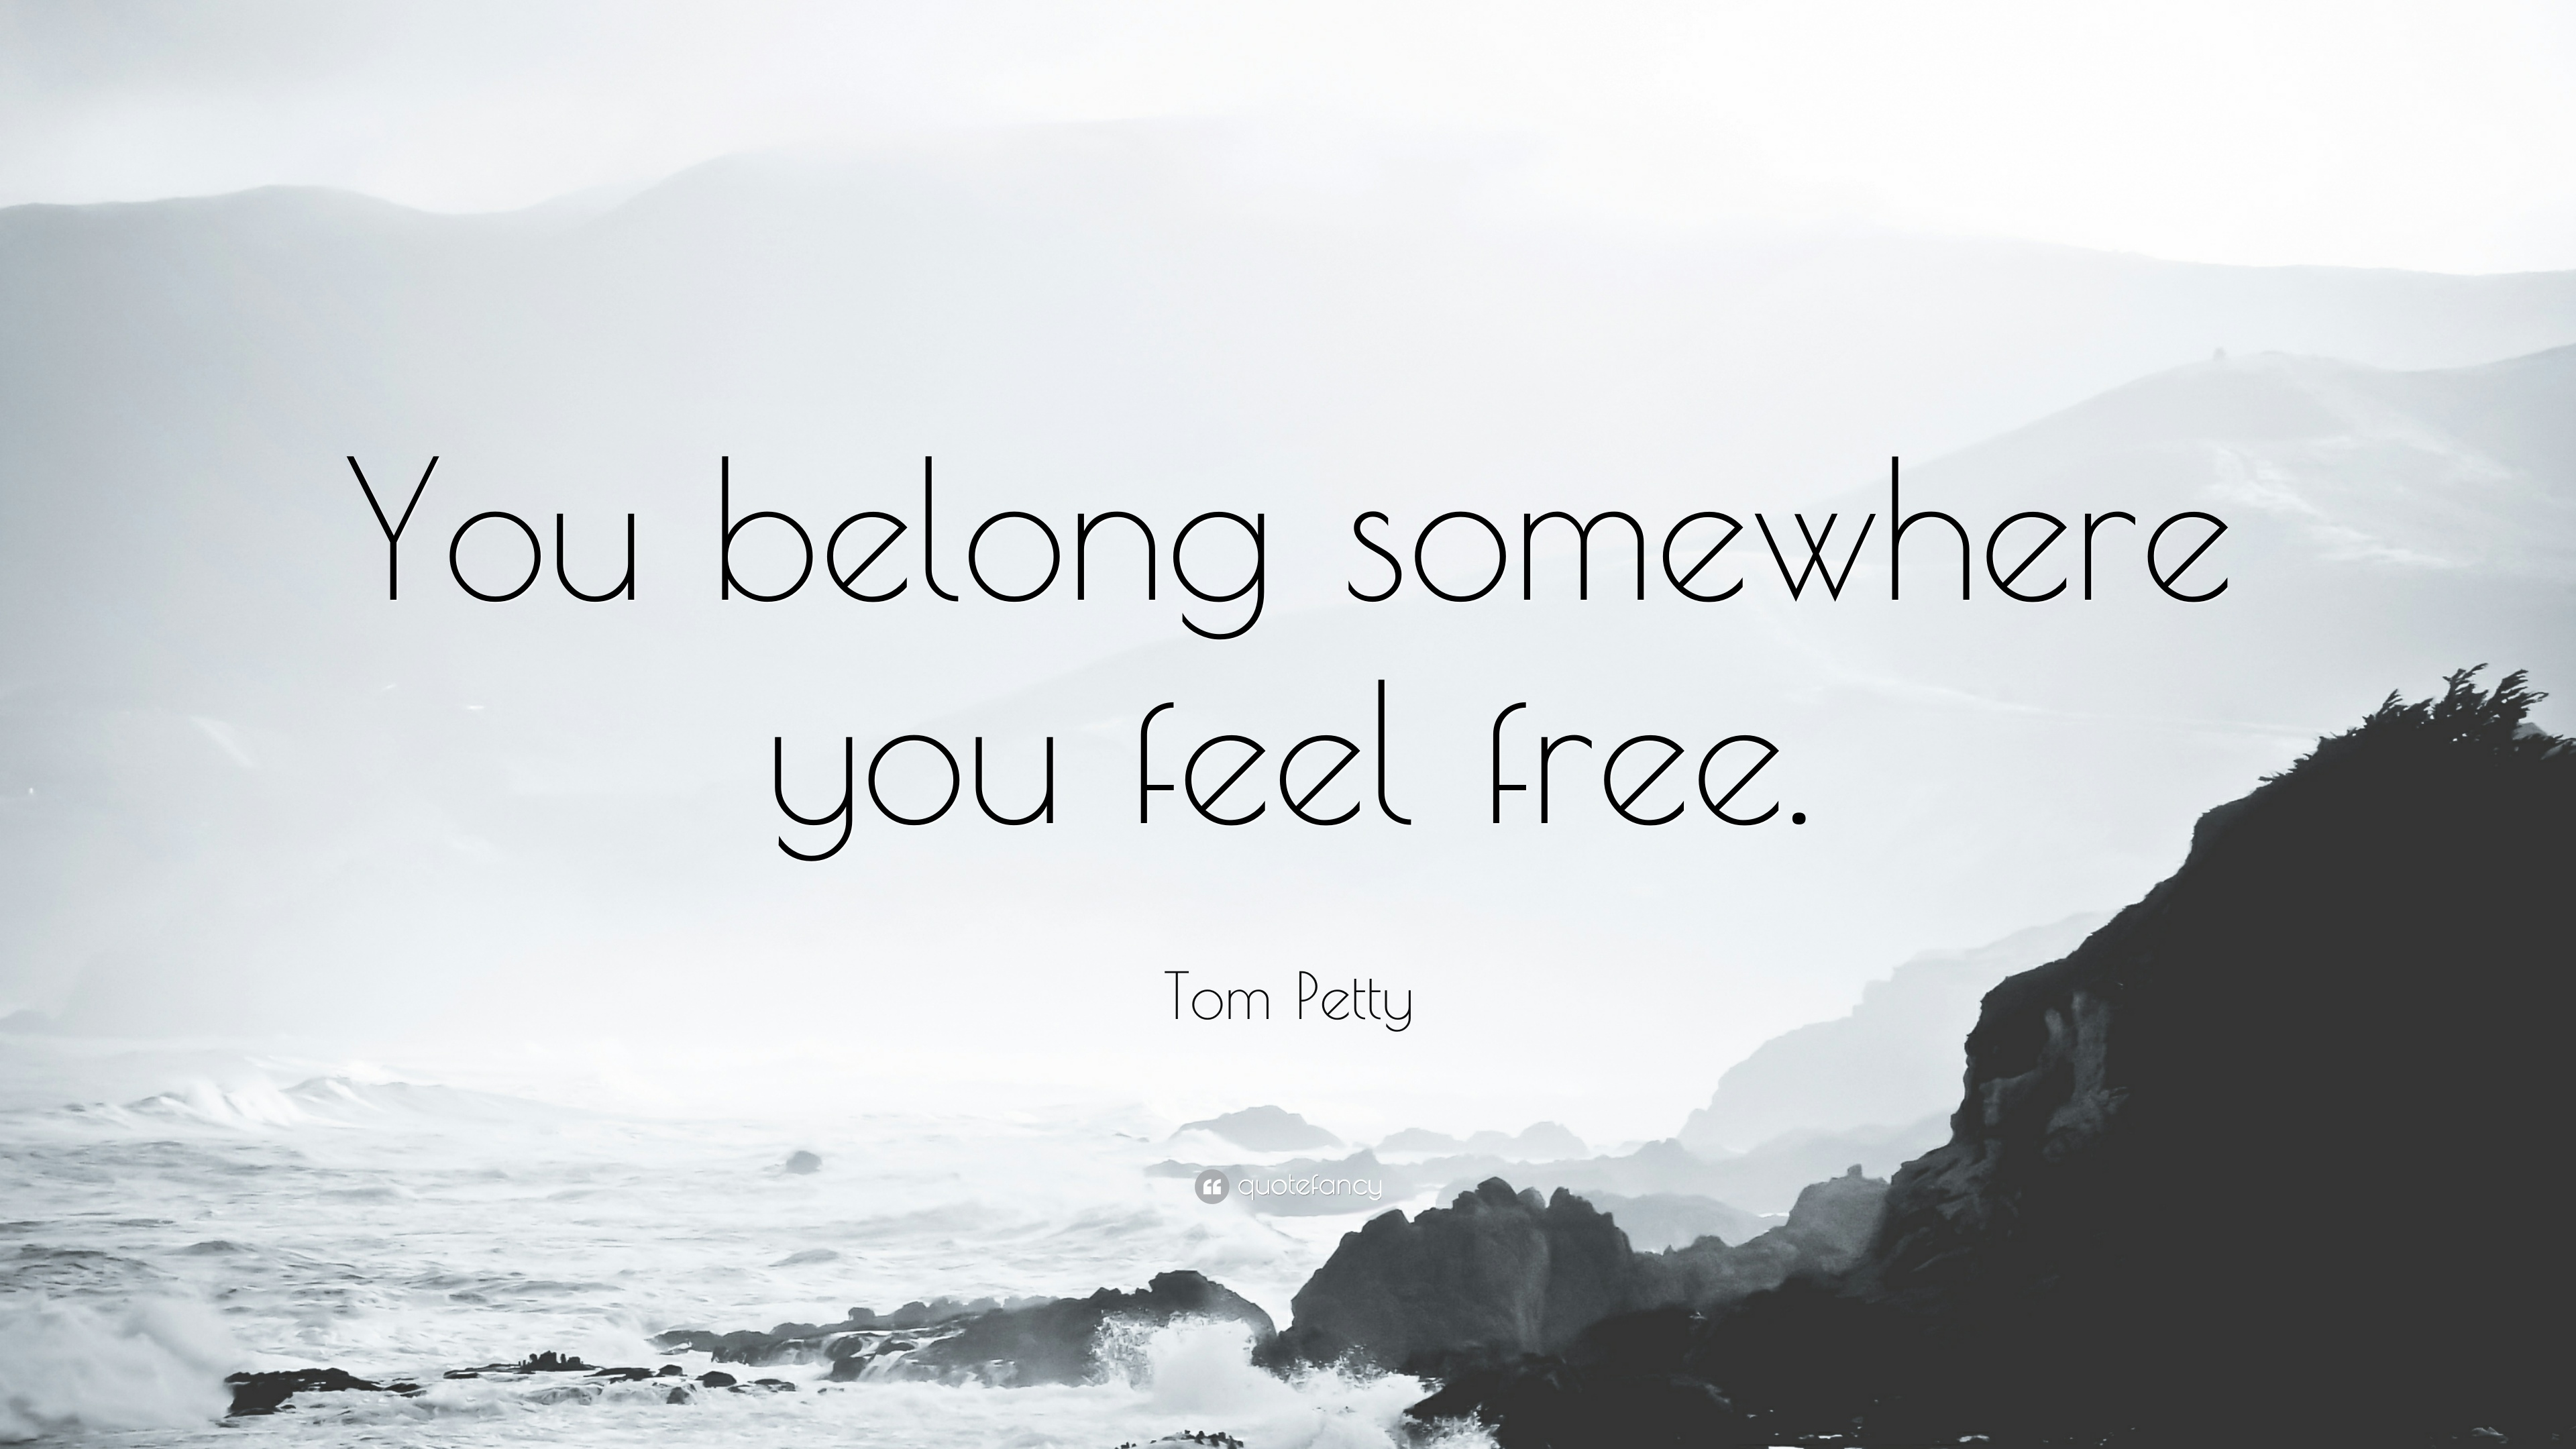 Tom Petty Quotes (100 wallpapers) - Quotefancy